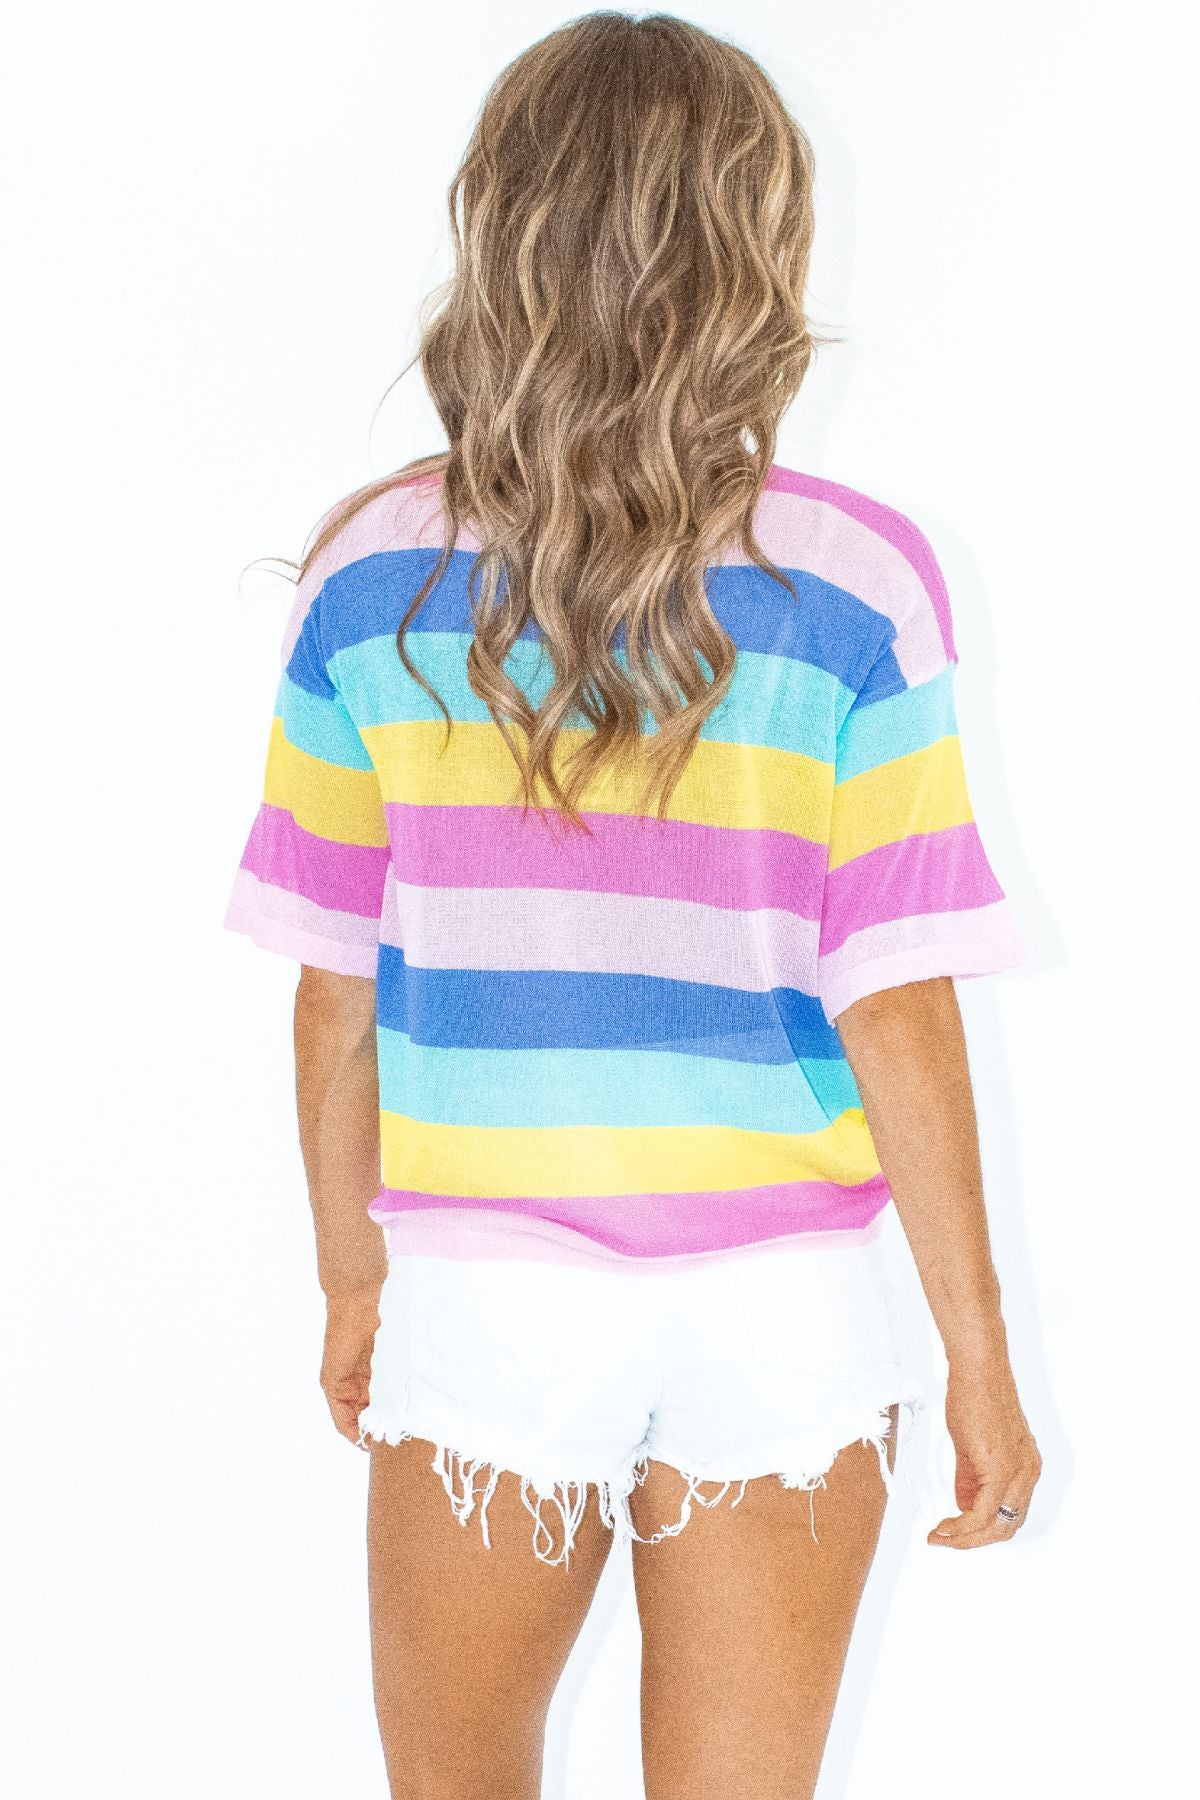 SHEER PINK MULTI STRIPED TEE